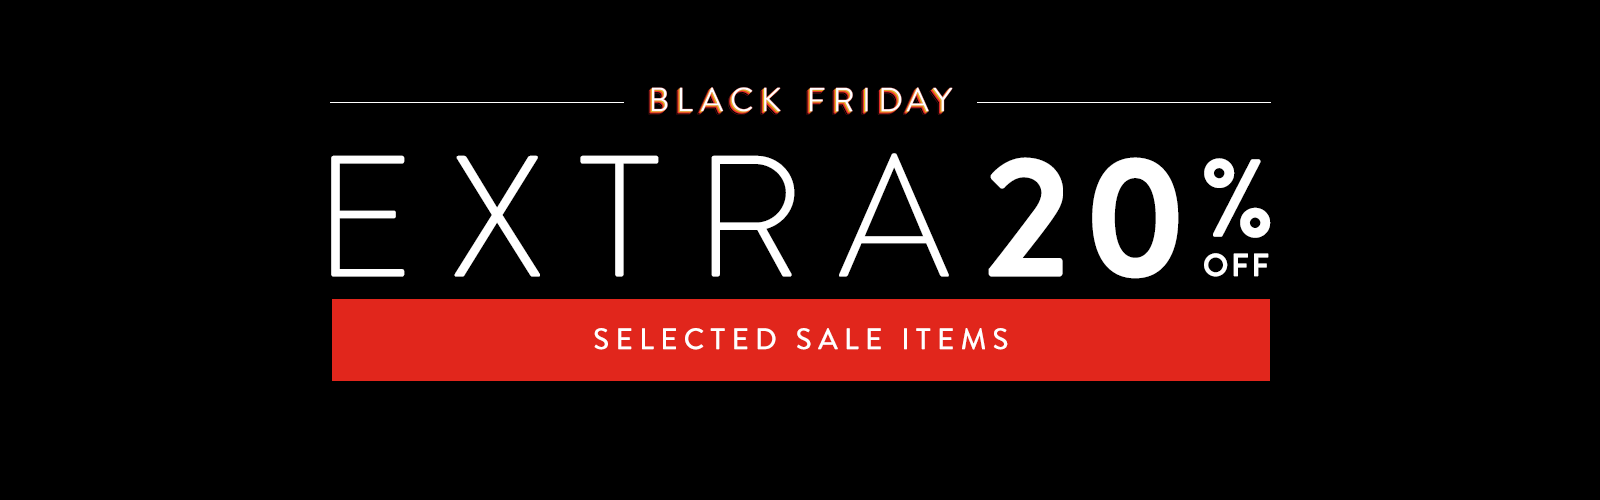 Black Friday at Nordstrom. Save an extra 20% off selected sale items.